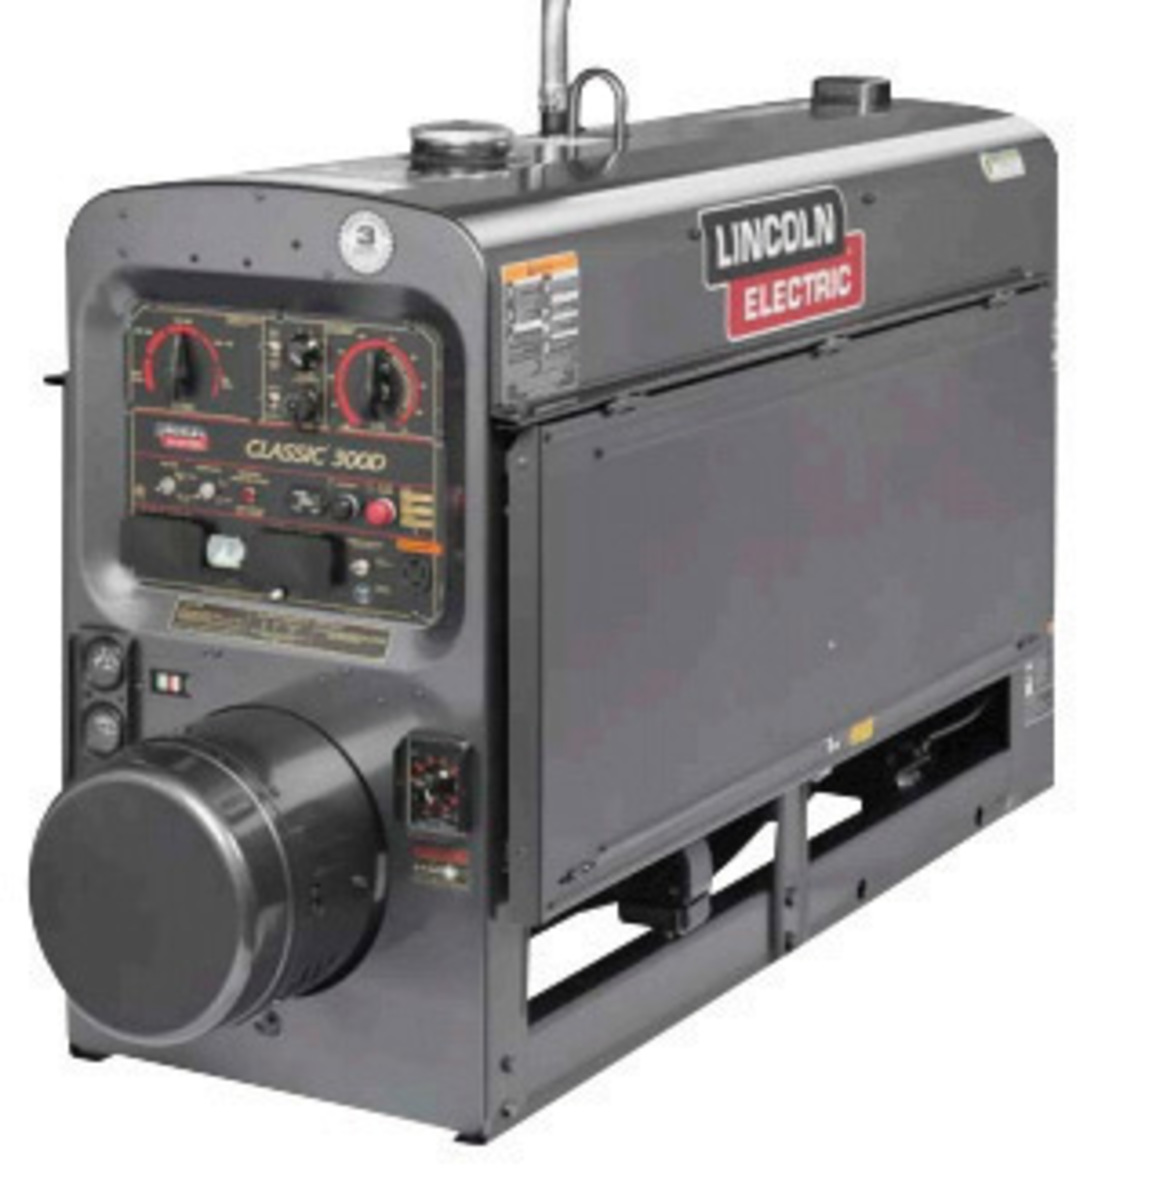 Lincoln ElectricR ClassicR 300D One PakR Engine Drive Welder With 4 Cylinder